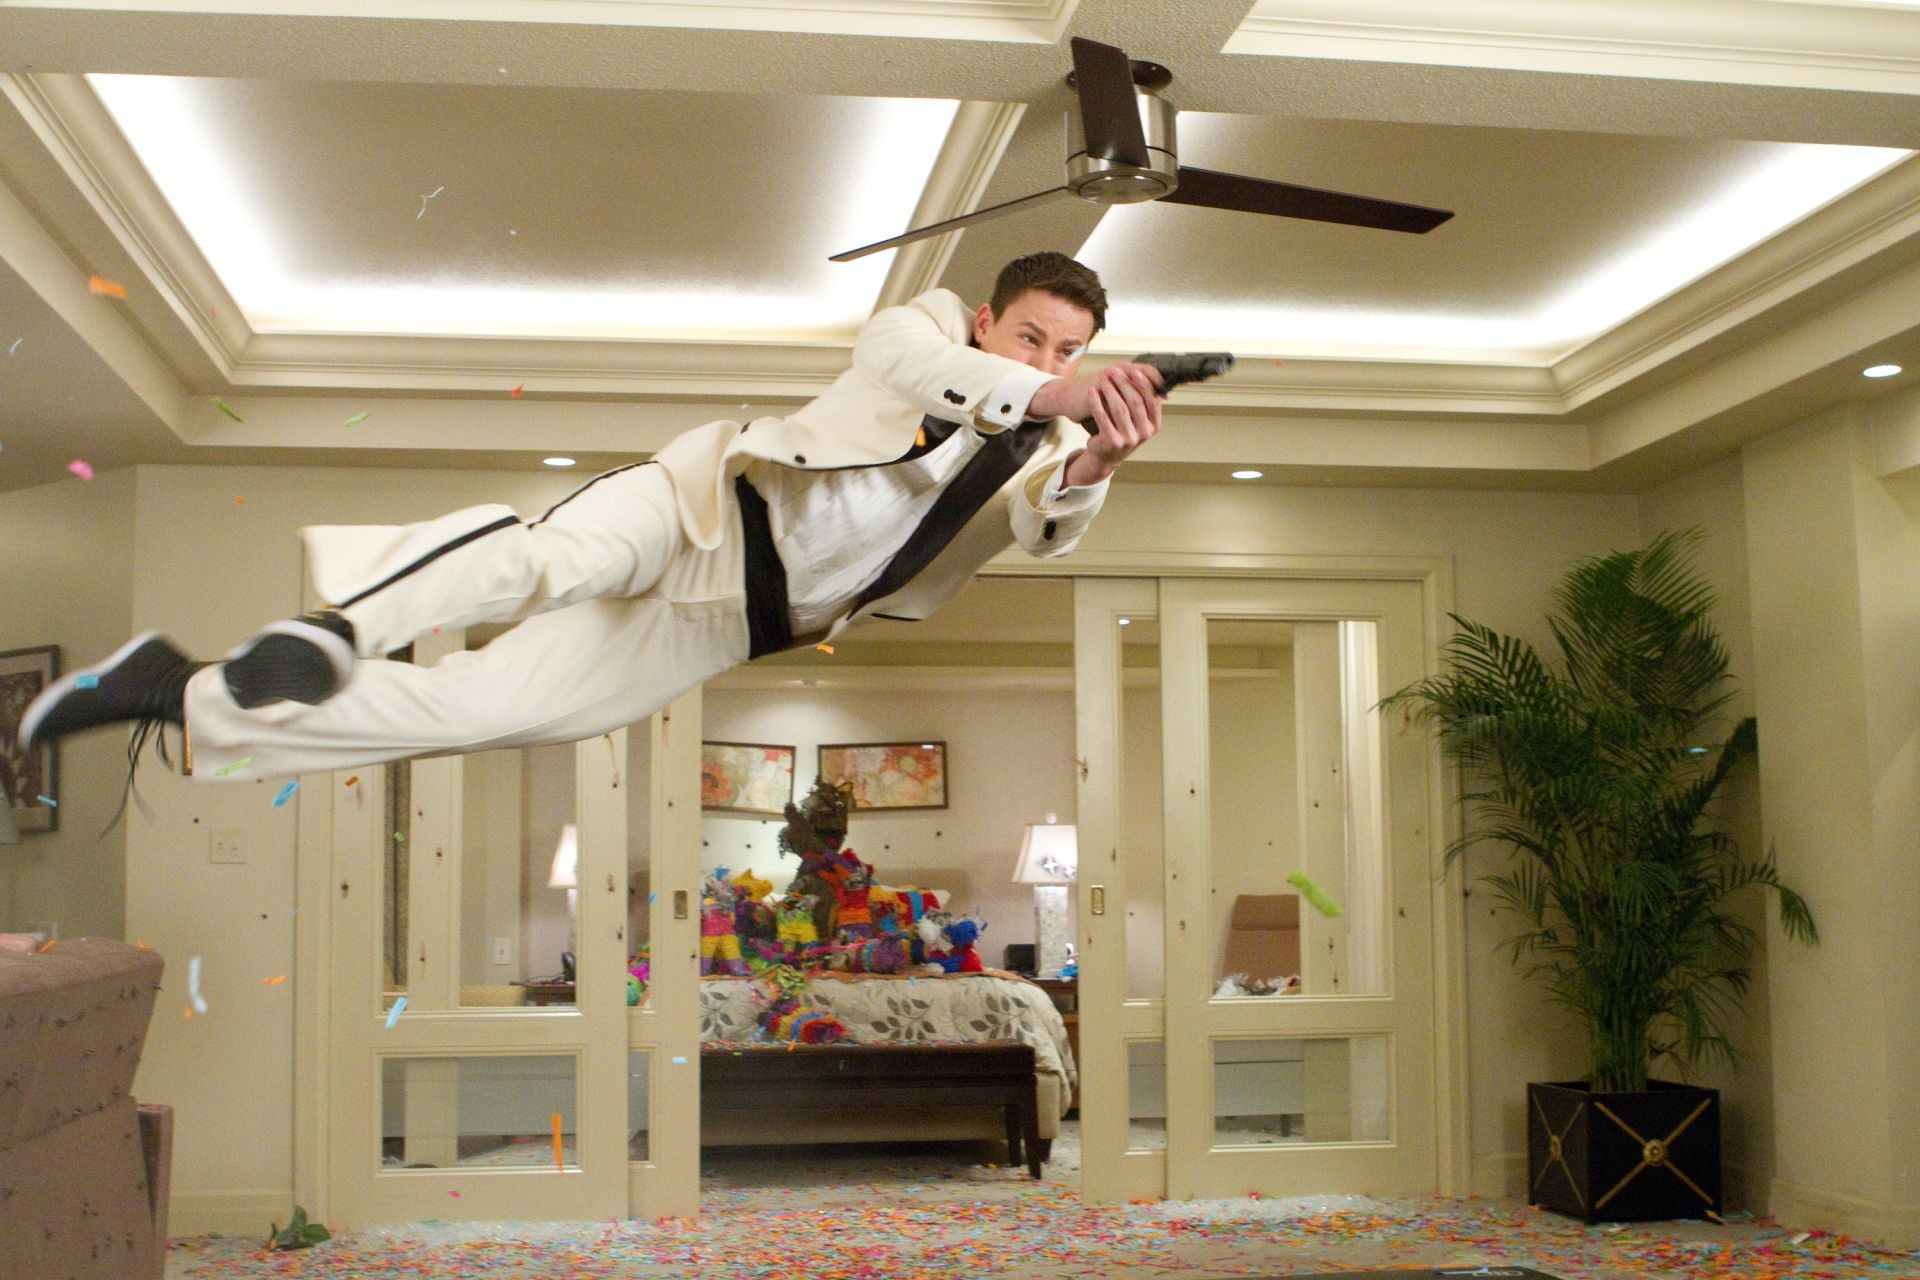 Channing Tatum stars as Jenko in Columbia Pictures' 21 Jump Street (2012)